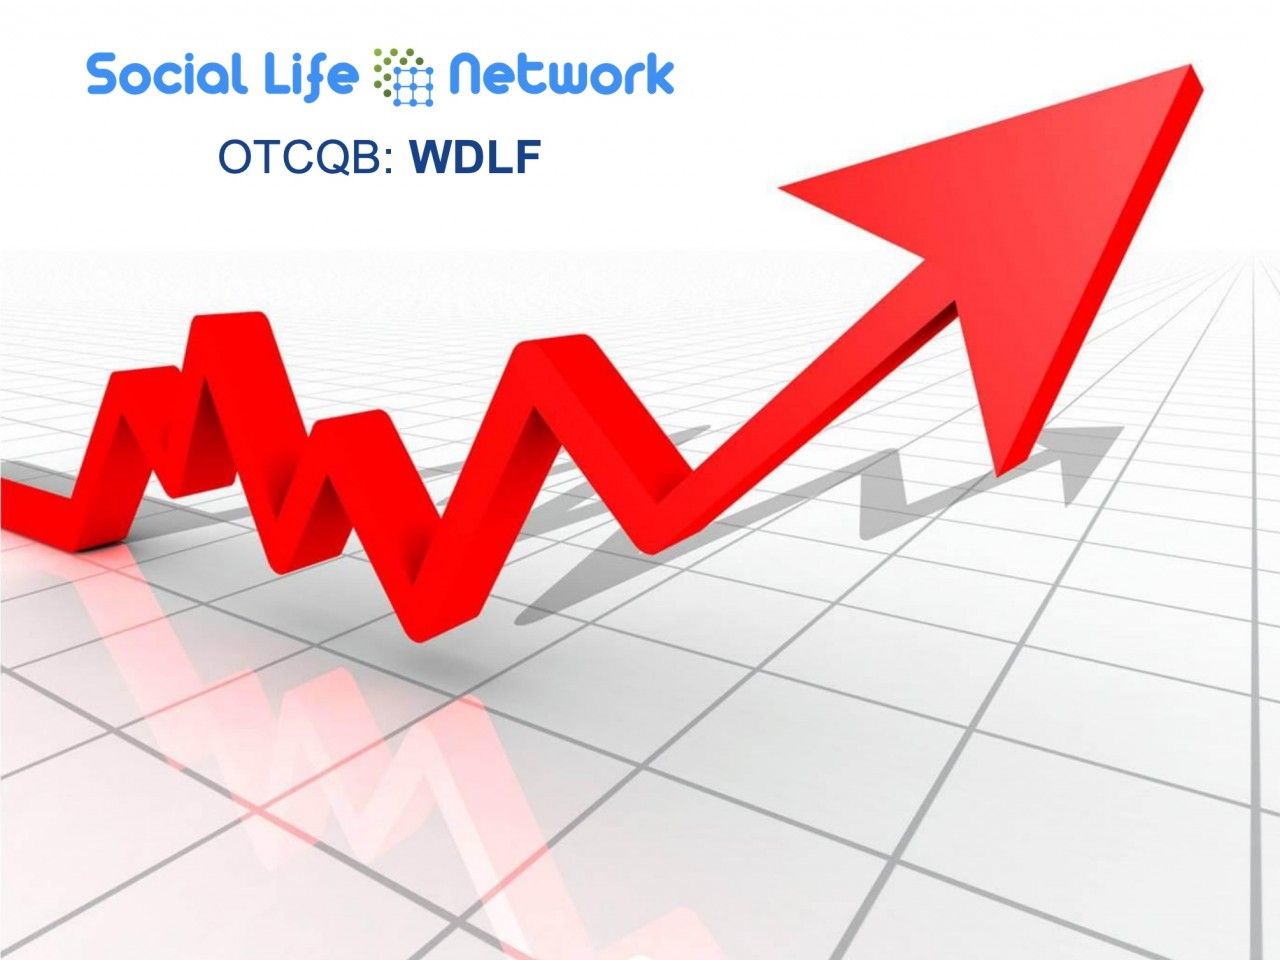 Social Life Network to Host March 28, 2019 Shareholder Call for 10-K and Q2 News Announcements